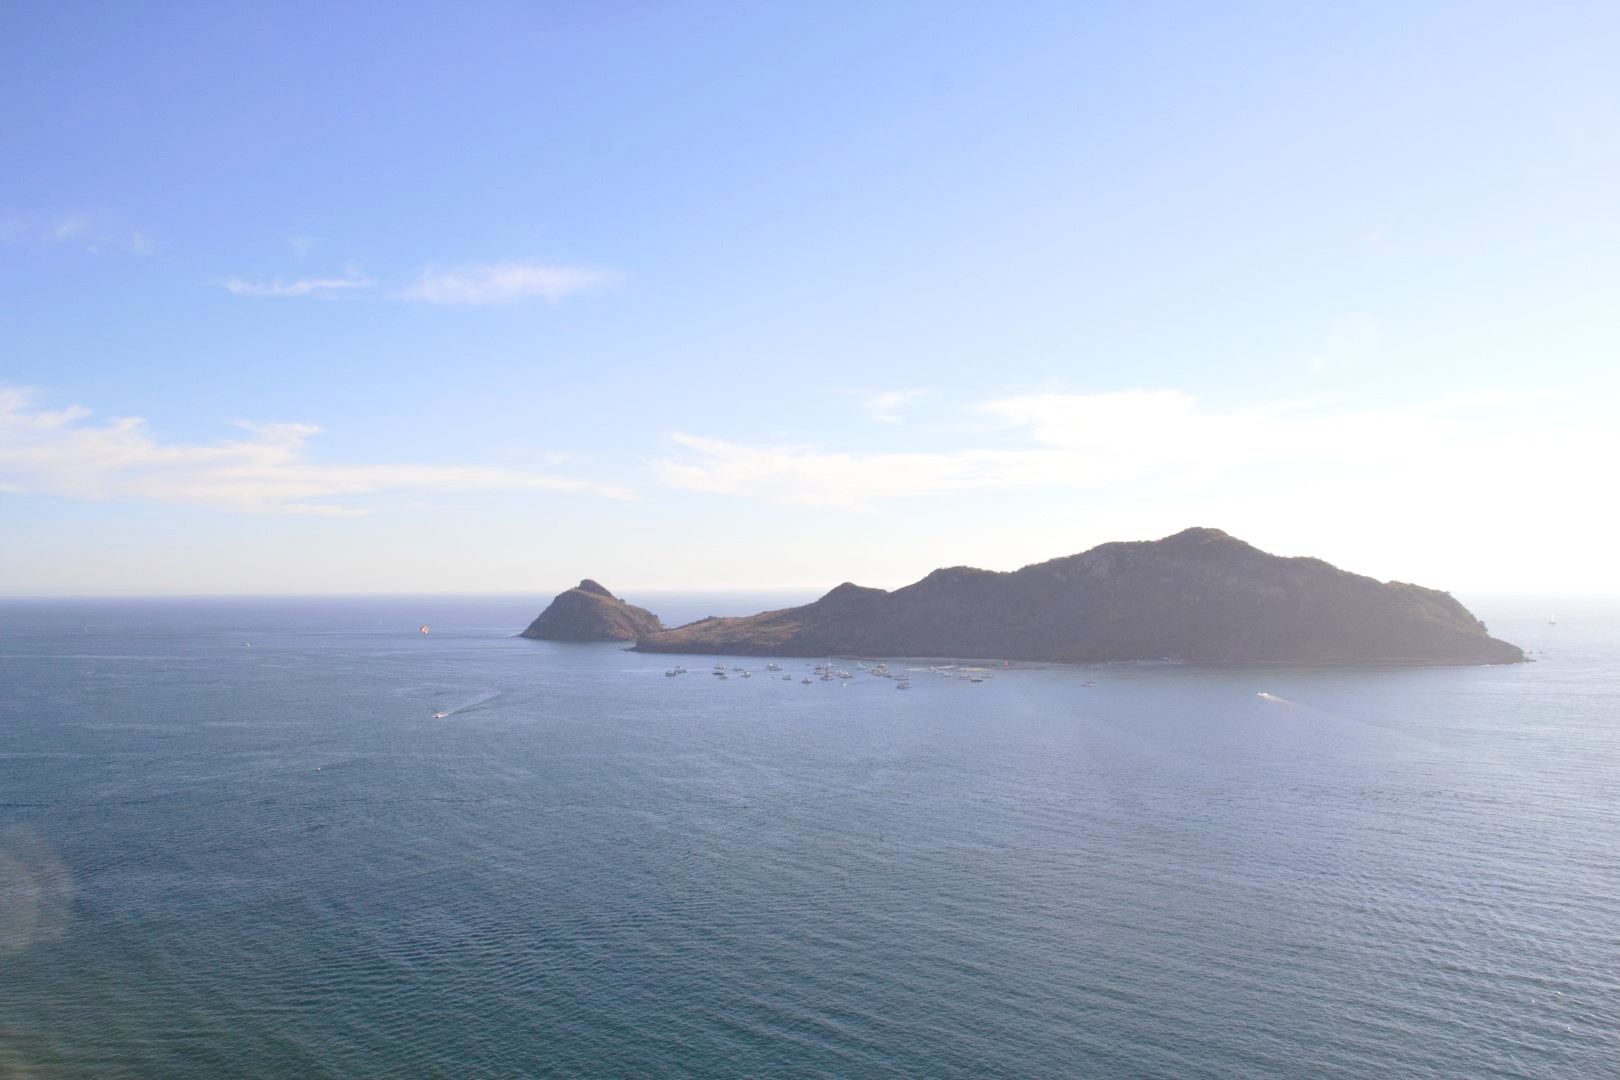 Amazing views of the islands, ocean, and Mazatlan's famous sunsets.